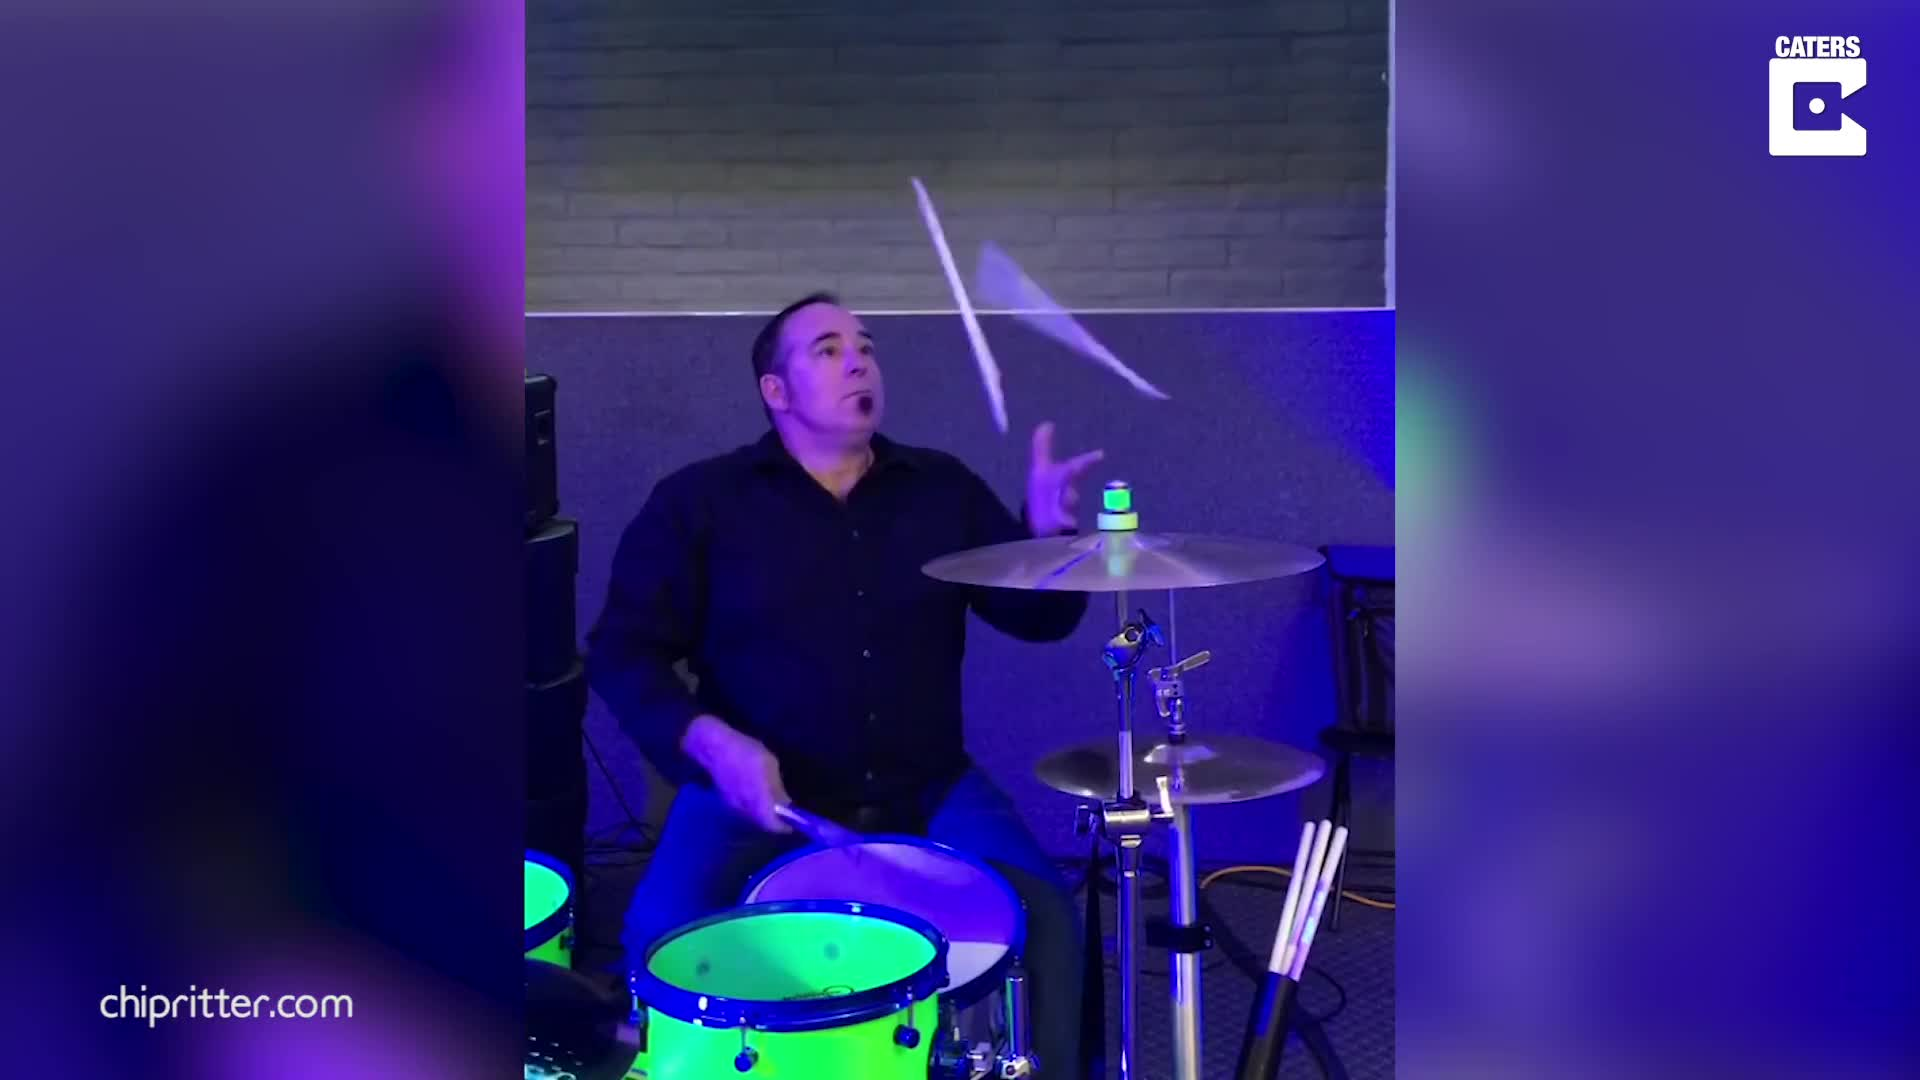 JAW-DROPPING JUGGLING SKILLS ON DISPLAY AS DRUMMER SHOWCASES HIS SKILLS WHILE PLAYING THE BEATS